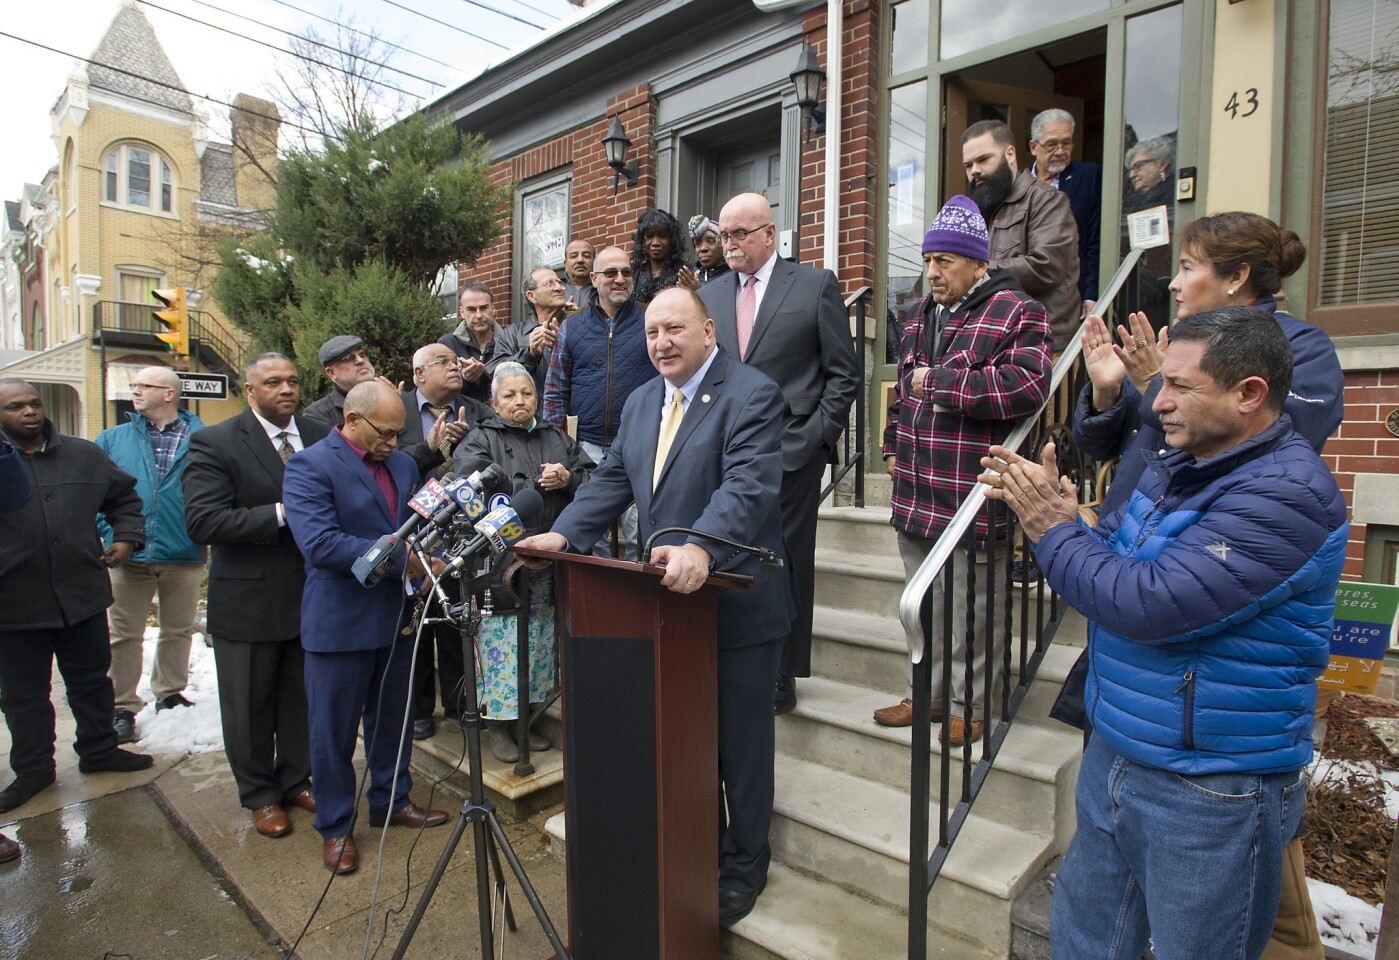 Surrounded by supporters in front of his North 11th Street home, Allentown Mayor Ed Pawlowski announces that he will resign from office during a news conference on Thursday, March 8, 2018. Pawlowski said he will resign from office at 5 p.m. Friday, ending what could have been one of the brightest tenures in Allentown history, but will instead be remembered as a chapter of corruption and malfeasance.